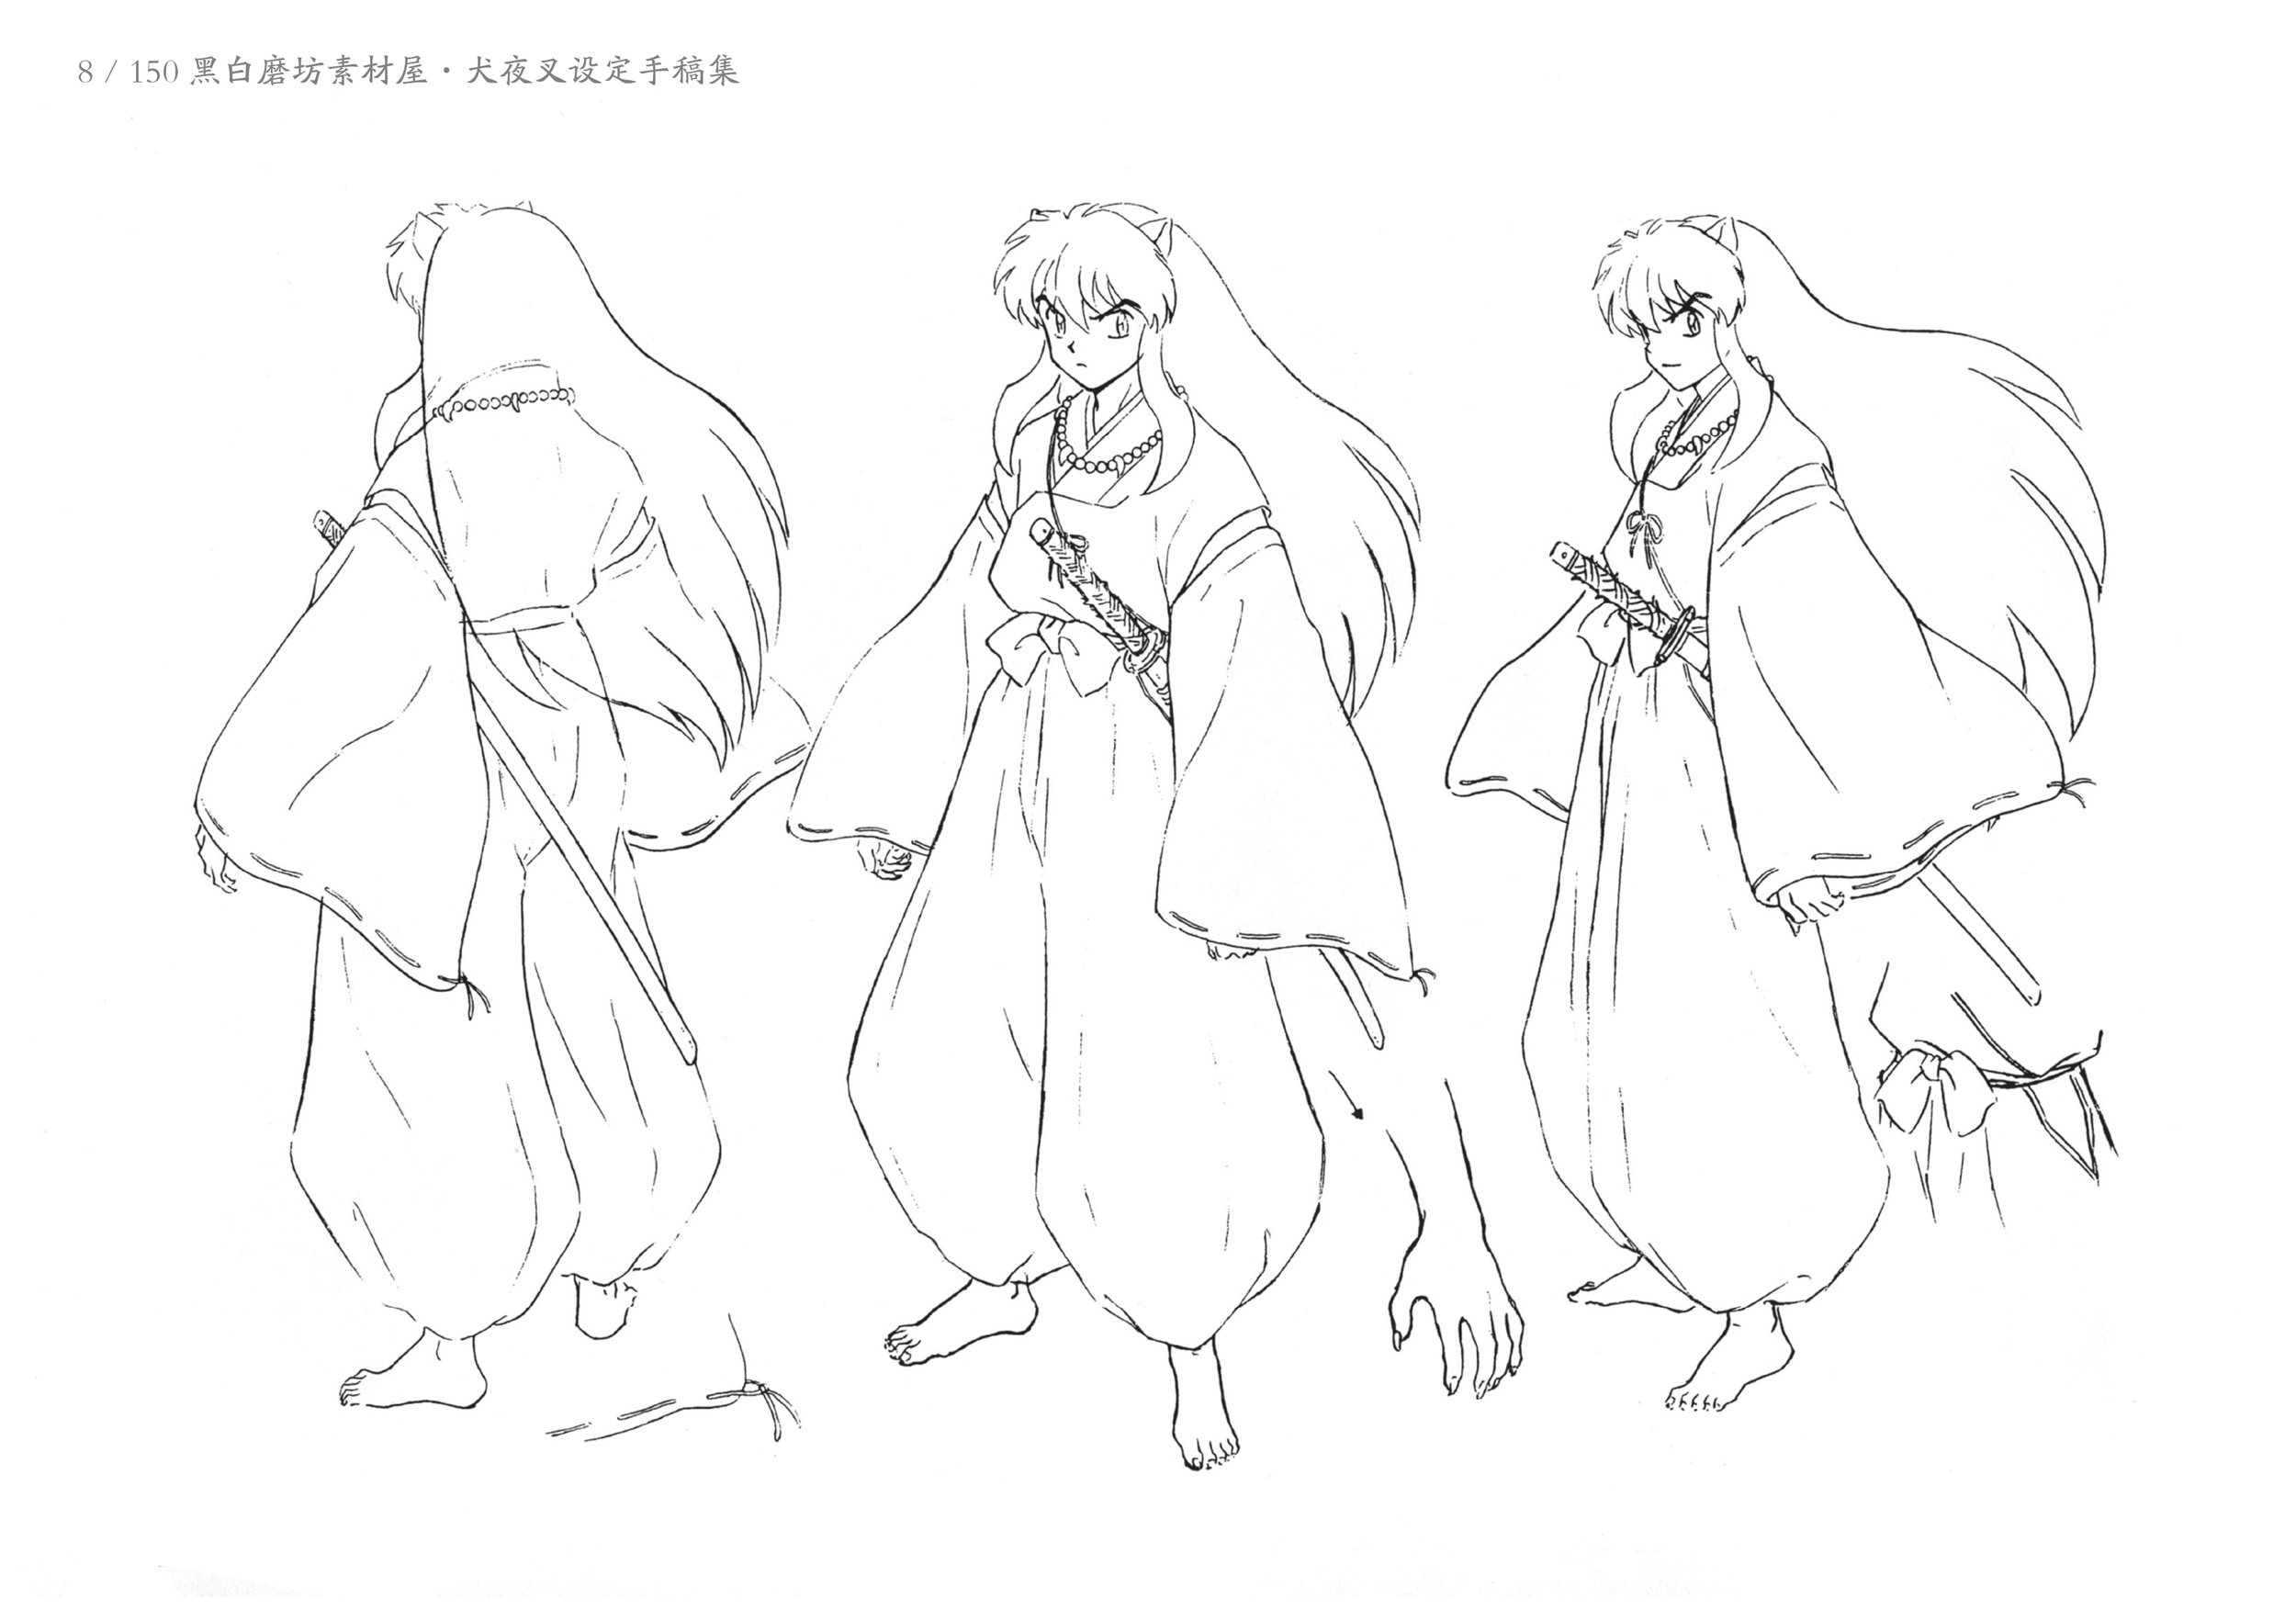 Art of the Inuyasha A - 8.jpg